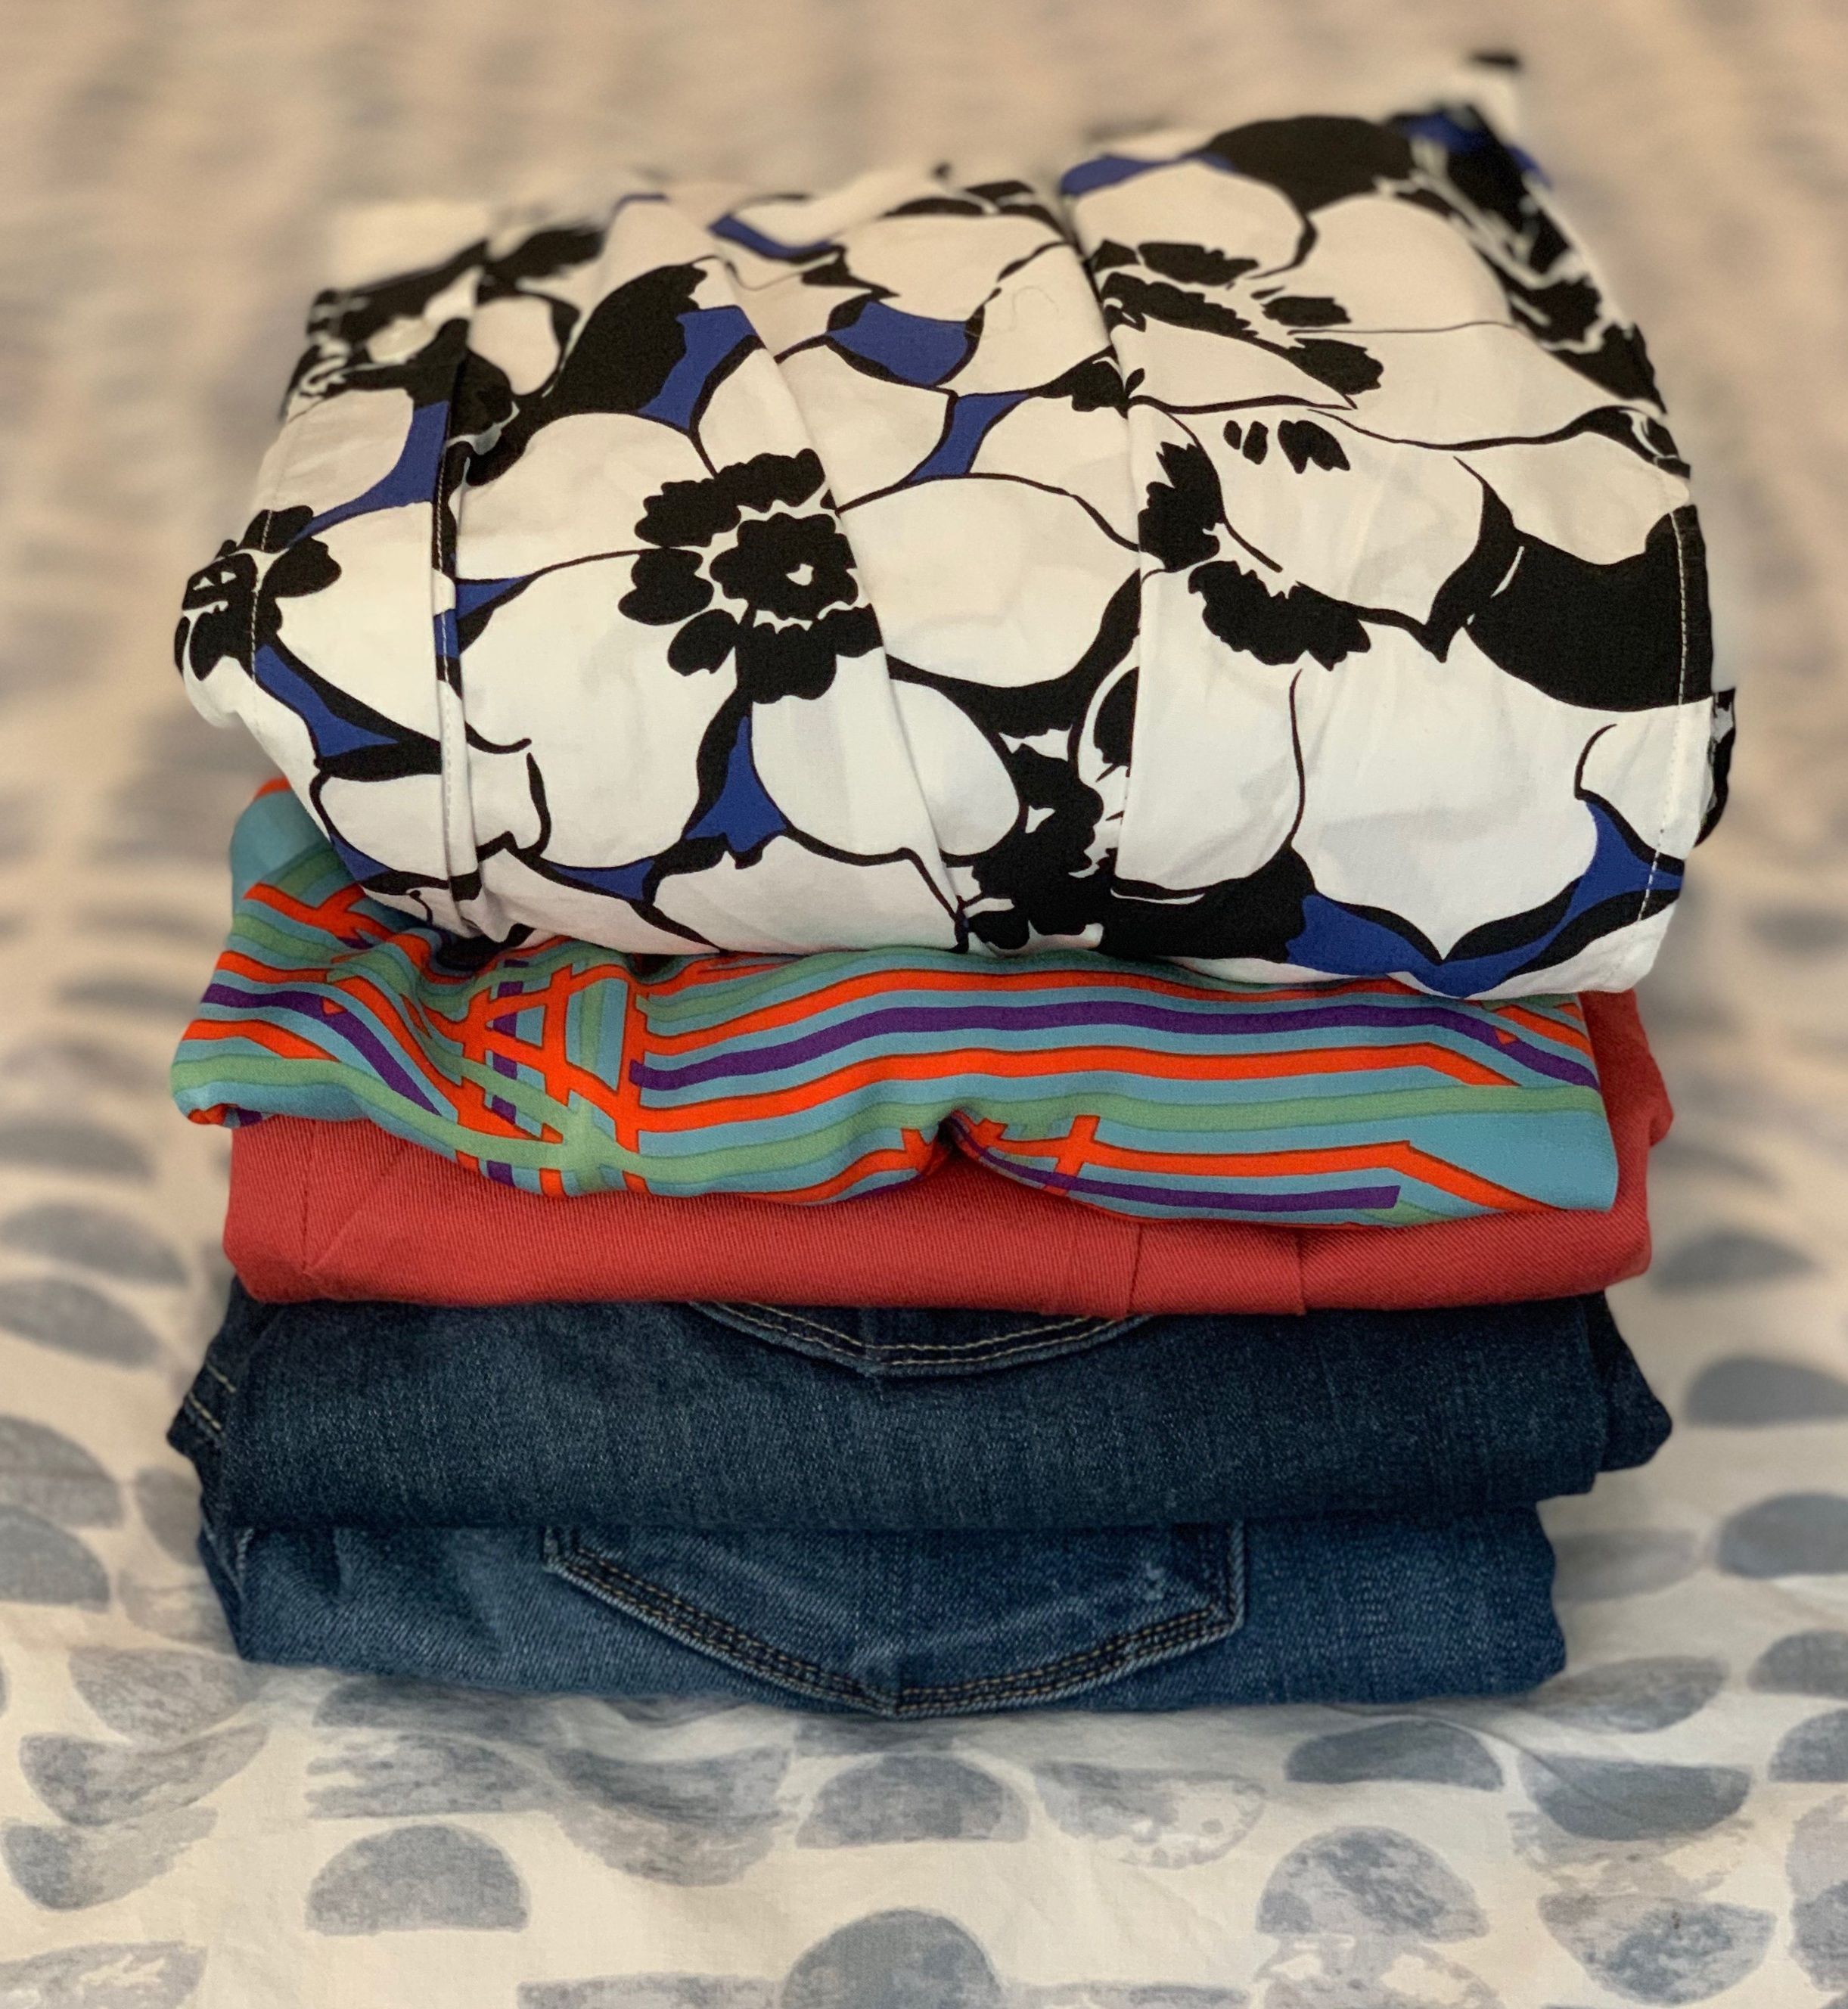 One in, one out! The pile of items for consignment after picking up some new tops.